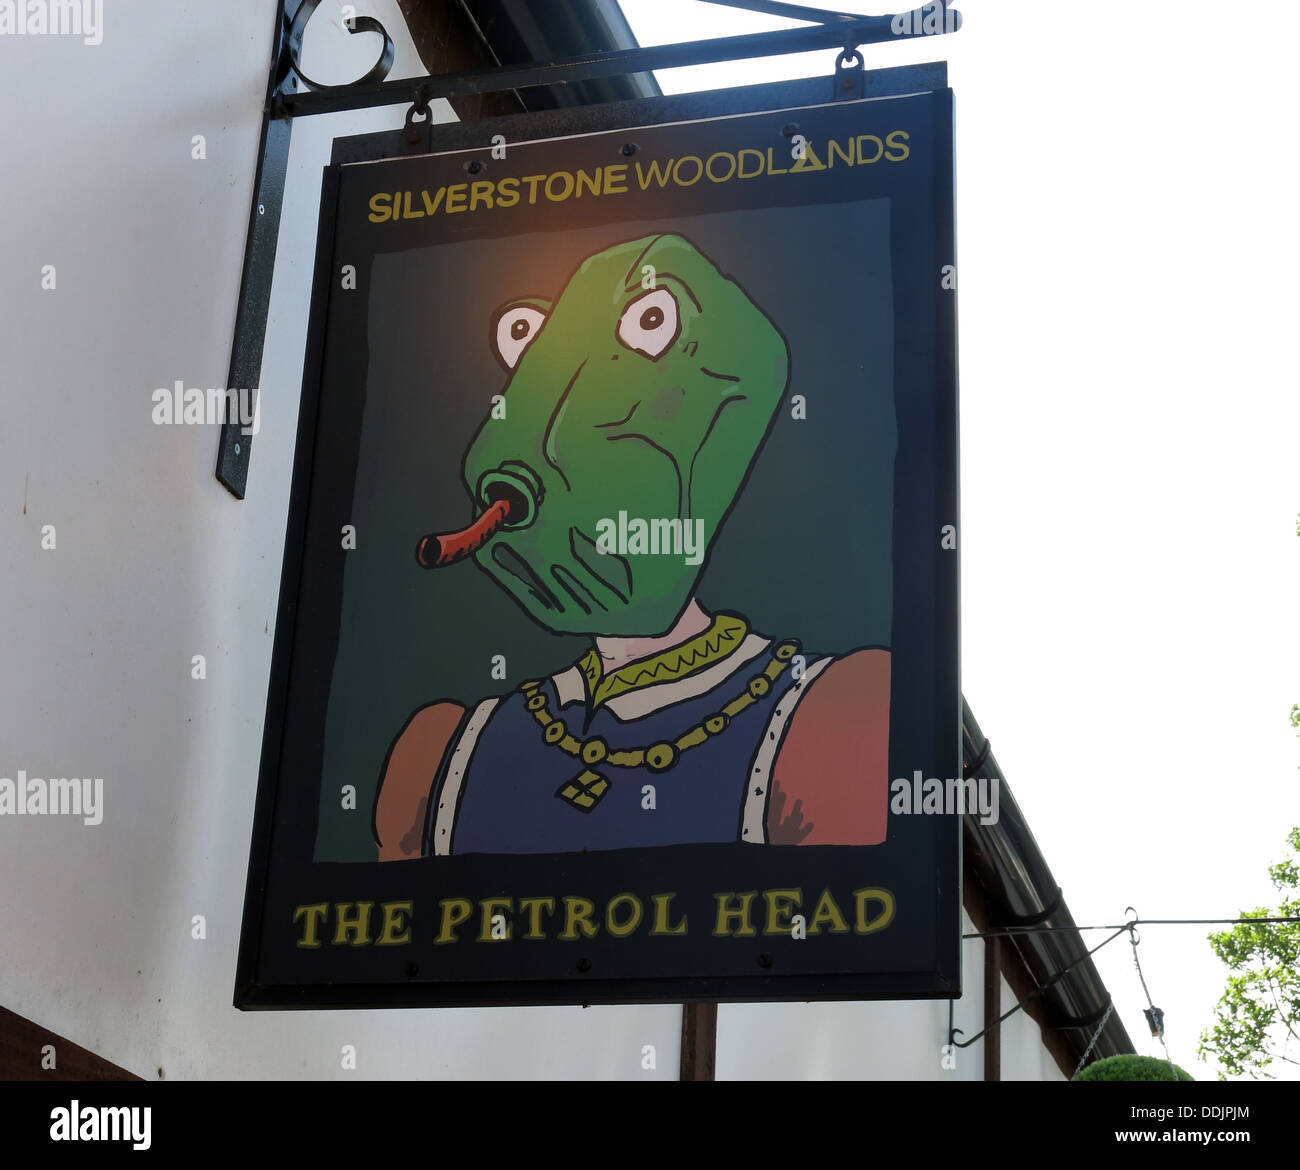 The Petrol head Pub, Silverstone, F1 British grand Prix - Stock Image